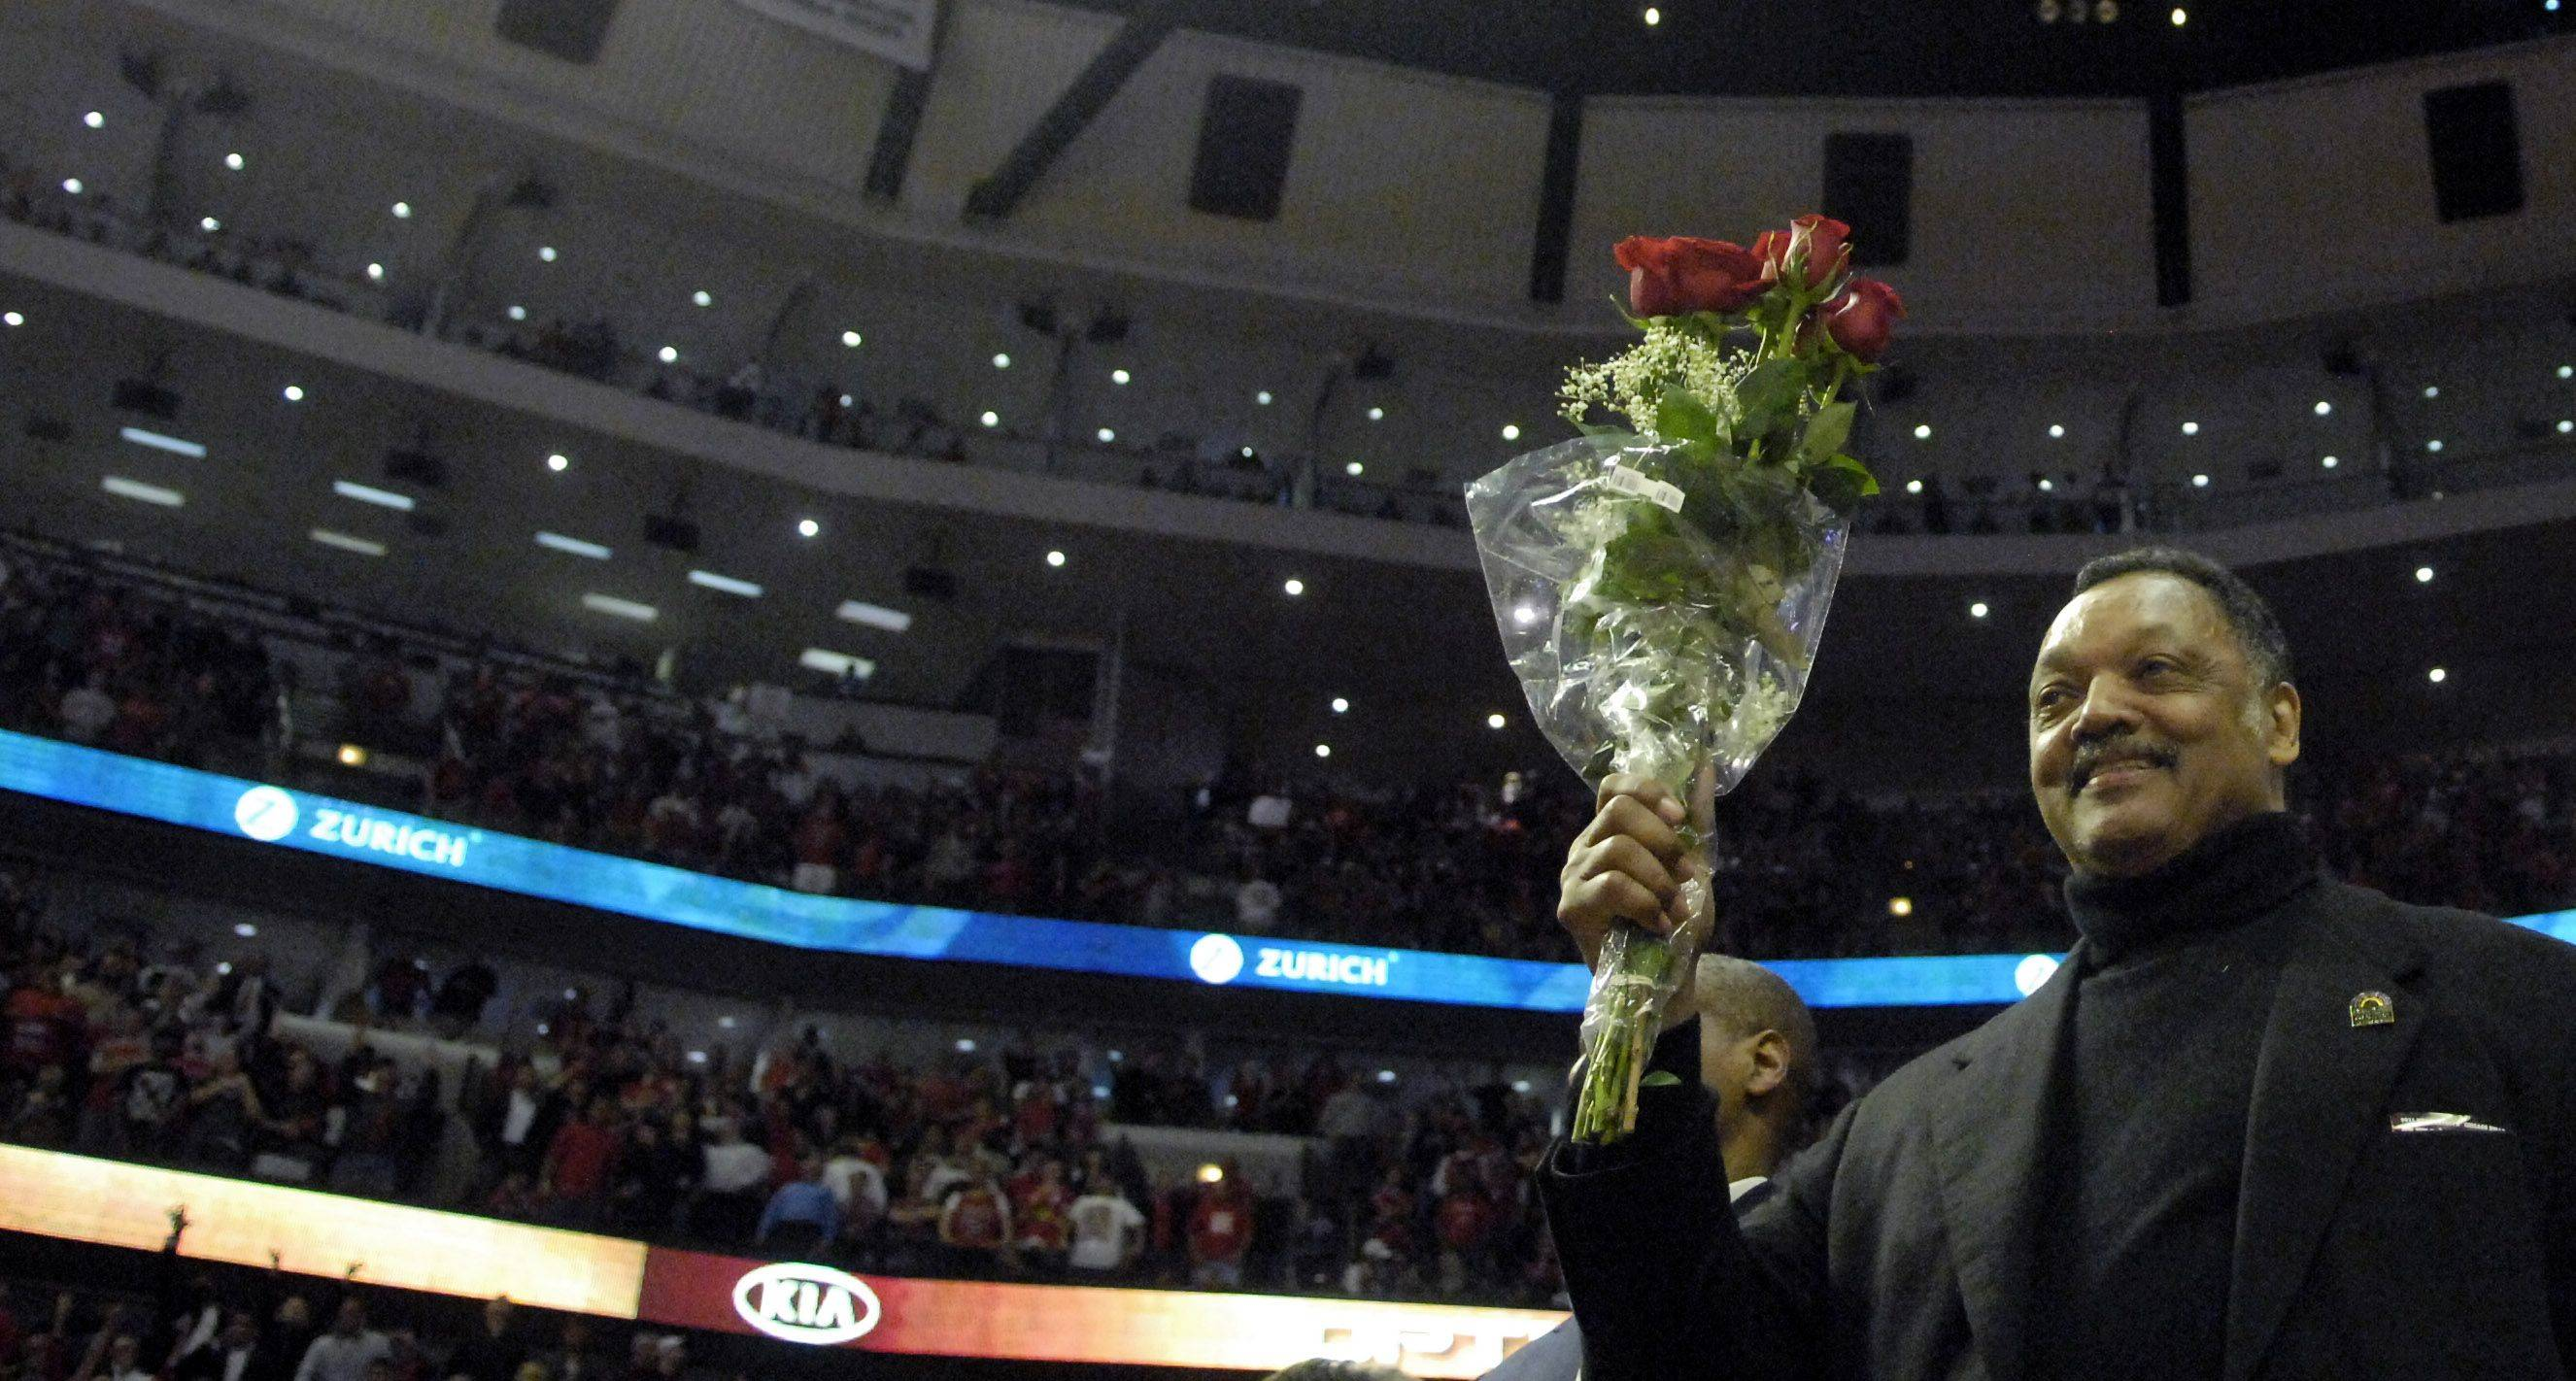 Jesse Jackson shows his love of Rose(s) during game 5 of the NBA Eastern Conference quarterfinals in Chicago Tuesday.